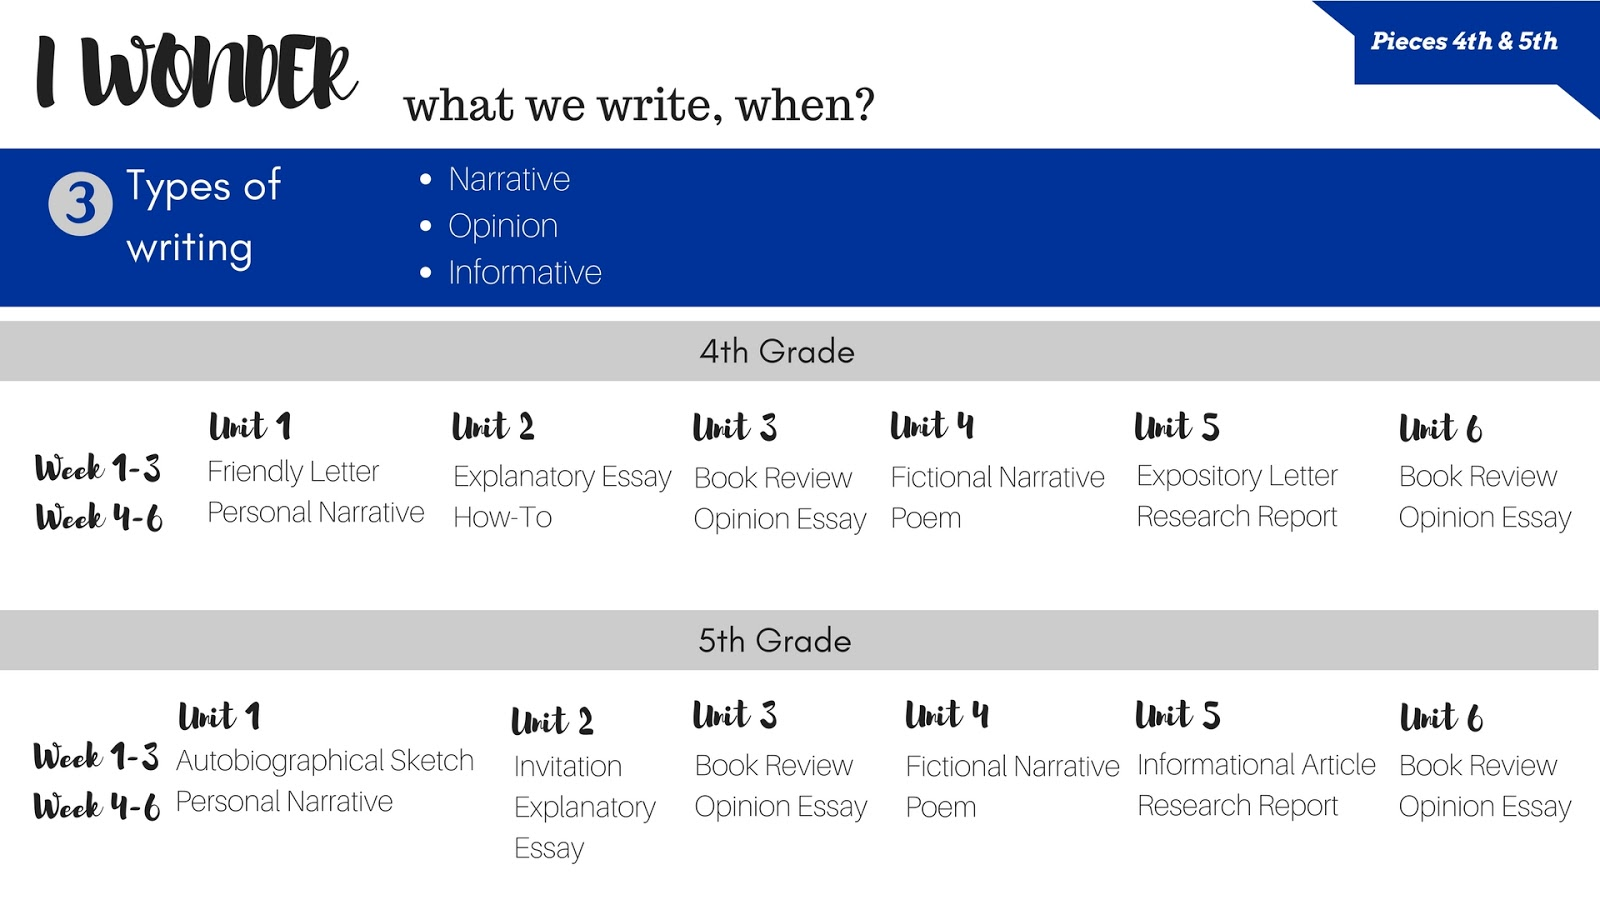 samr bloom s at the intermediate level pe music ftedtech  writing plan by the end of the year students in each grade will write a total of 12 genre pieces more if you re also doing the inquiry piece